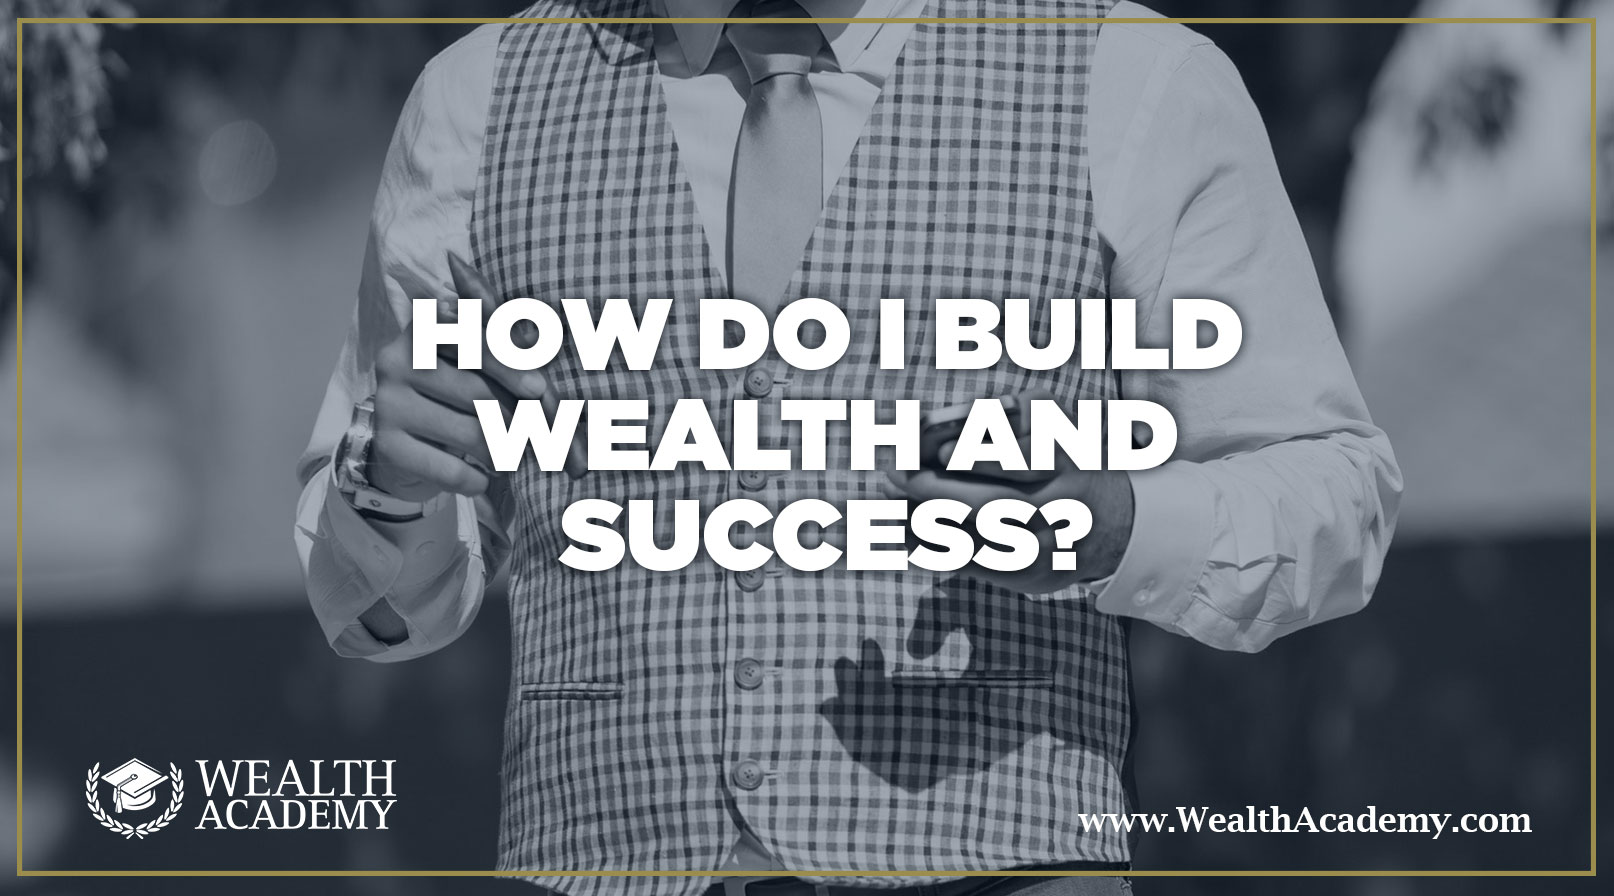 How-Do-I-Build-Wealth-and-Success--WA-BLOG-POST